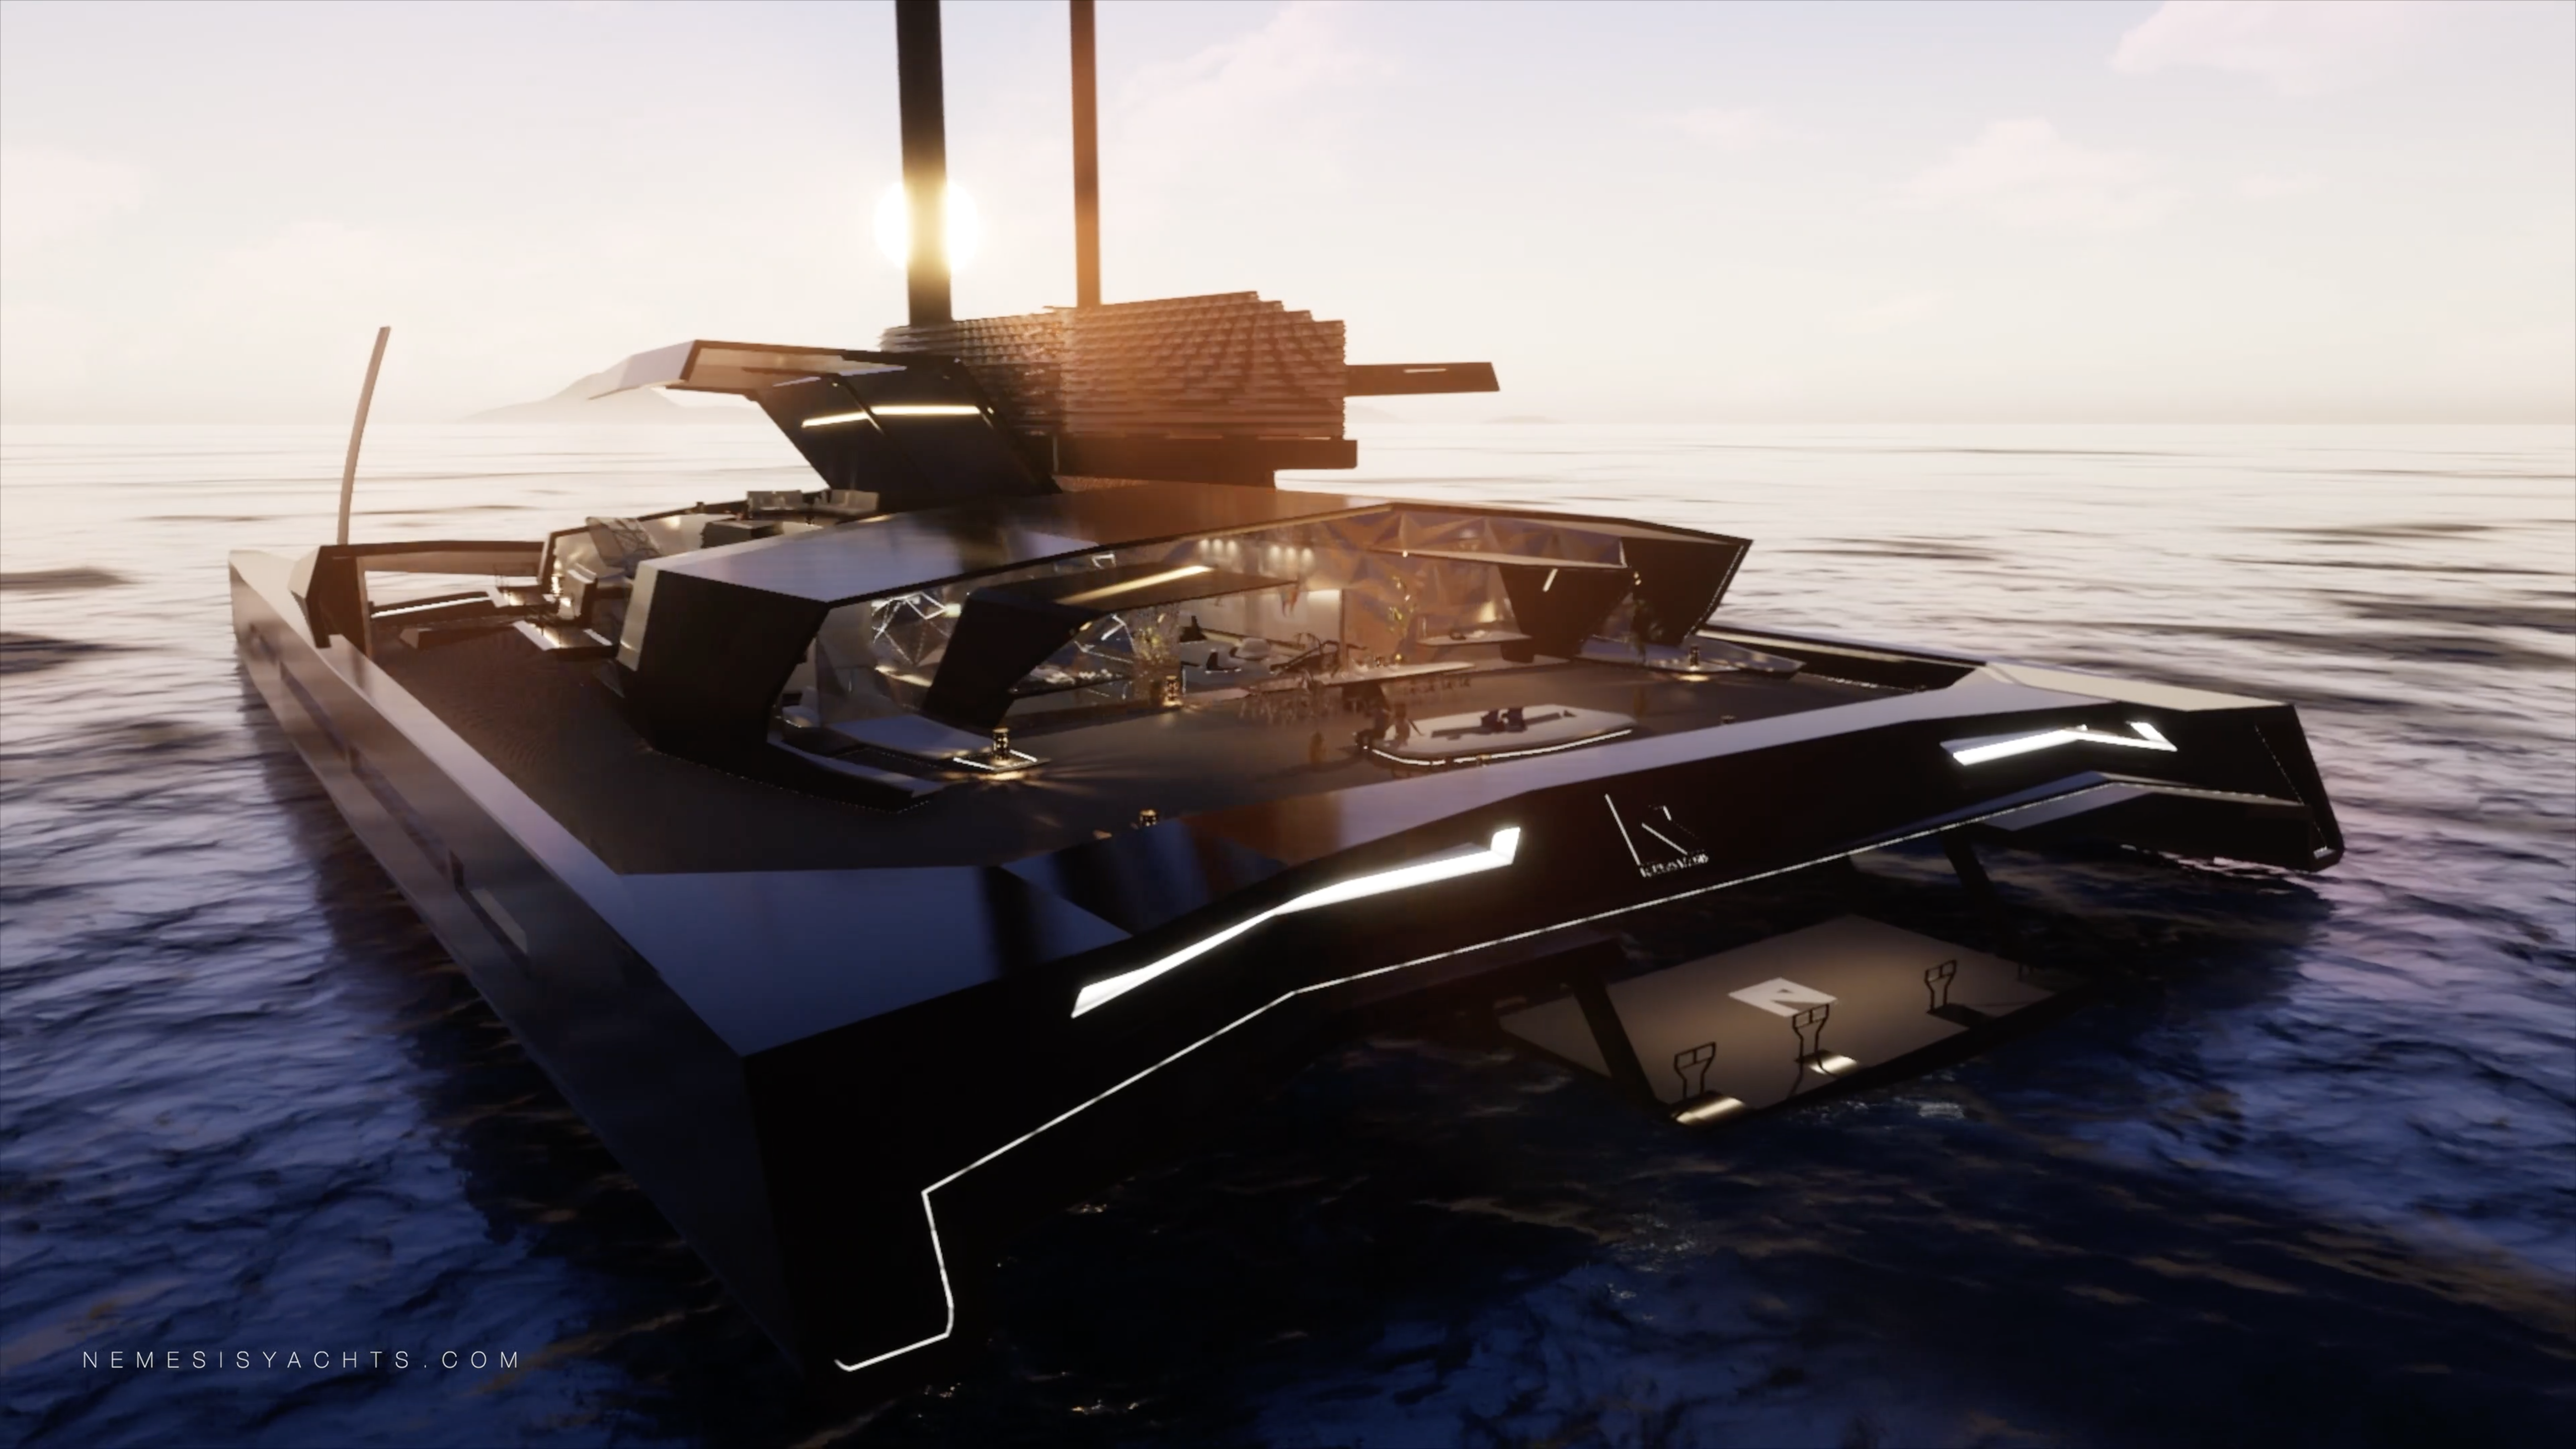 Nemesis One - Hydrofoil Catamaran Stern View  Sunset